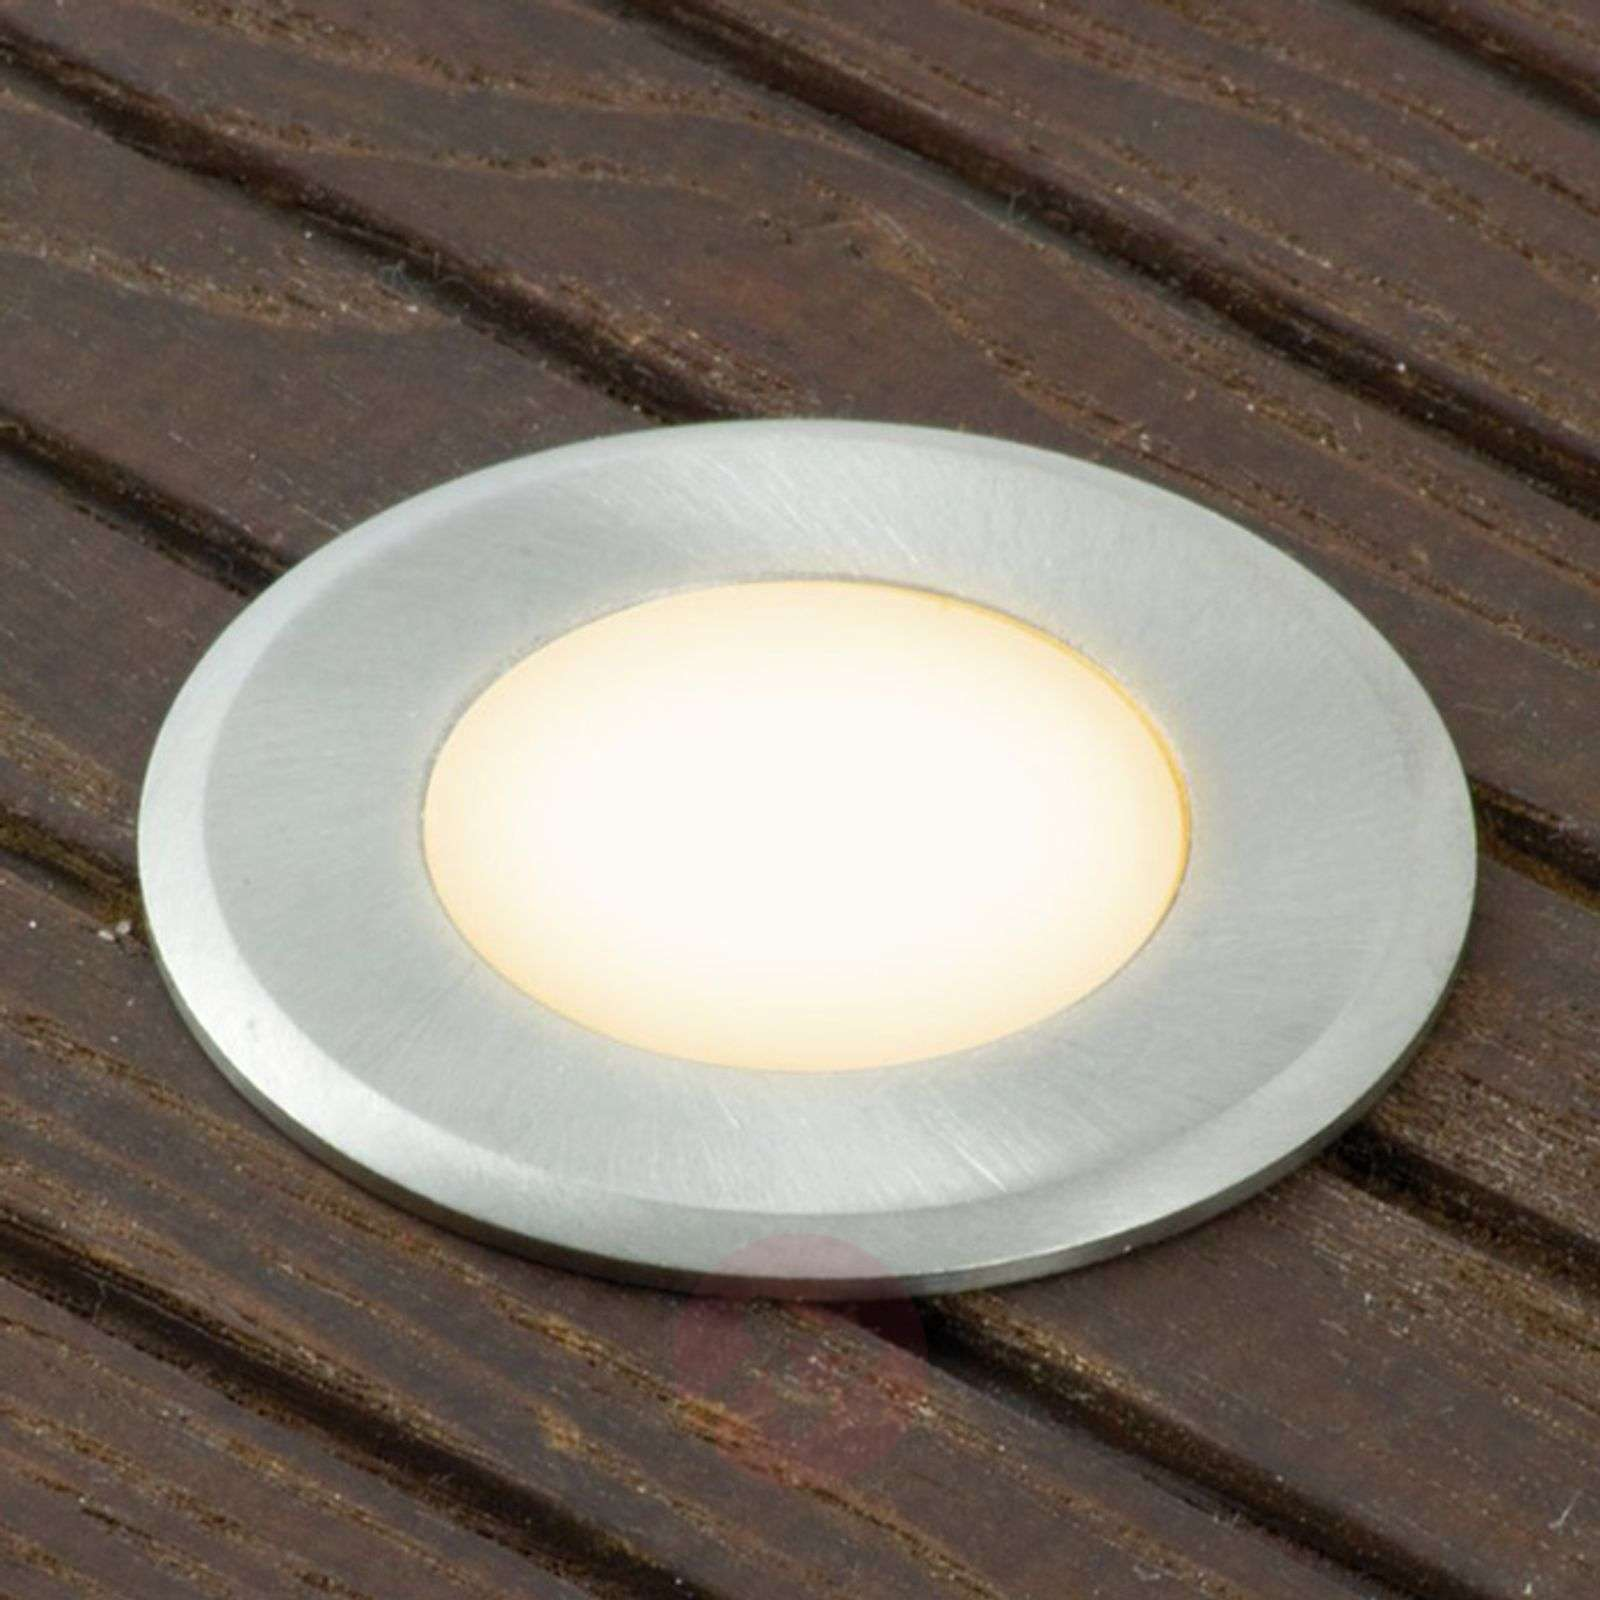 of white led inch awesome kits retrofit trim recessed home best template kit lighting unique